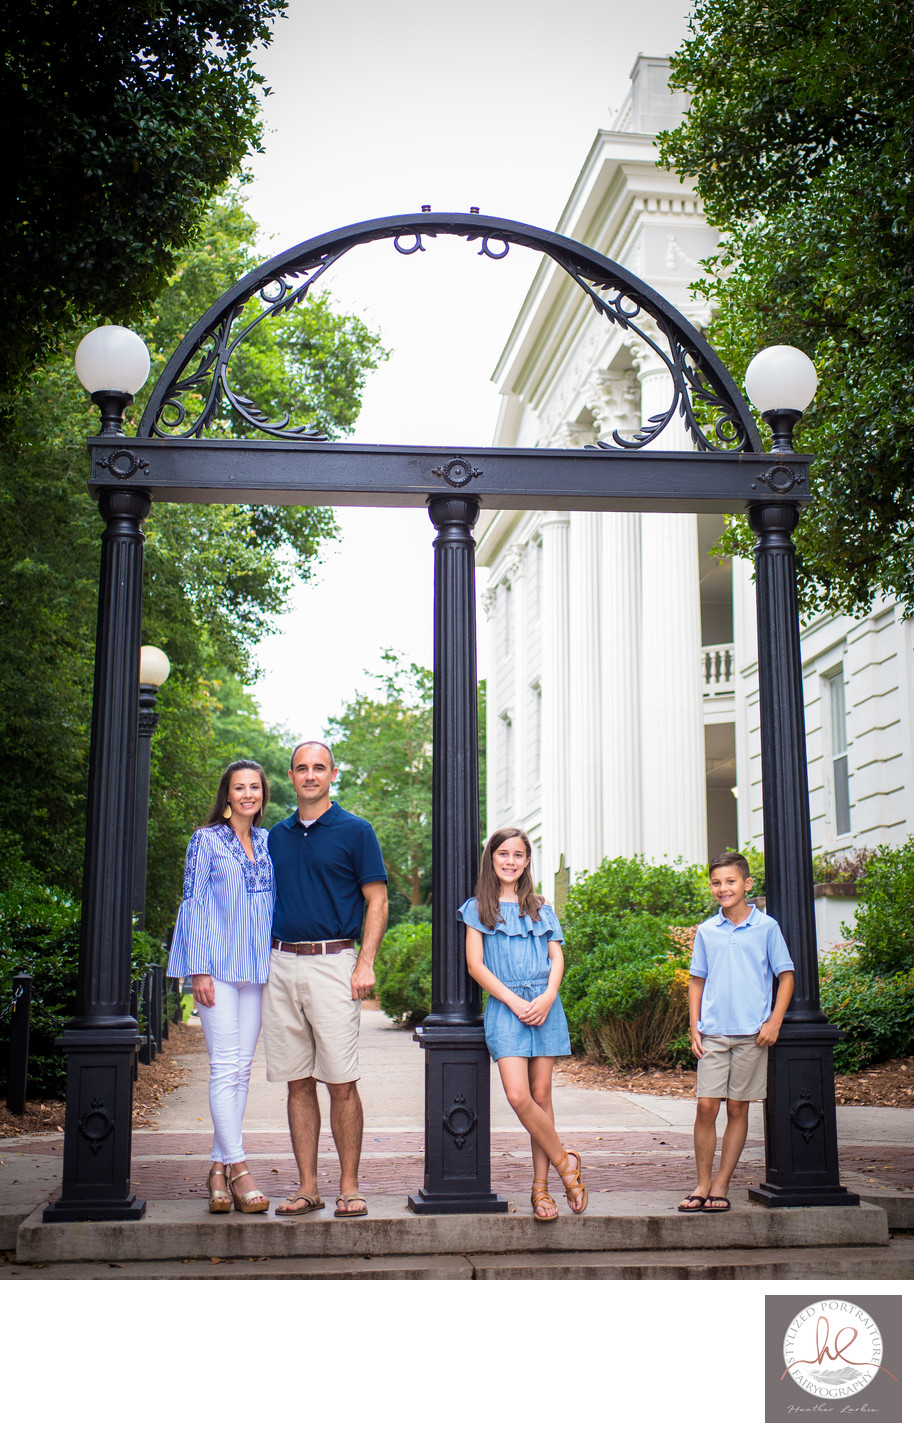 Family under the uga arches